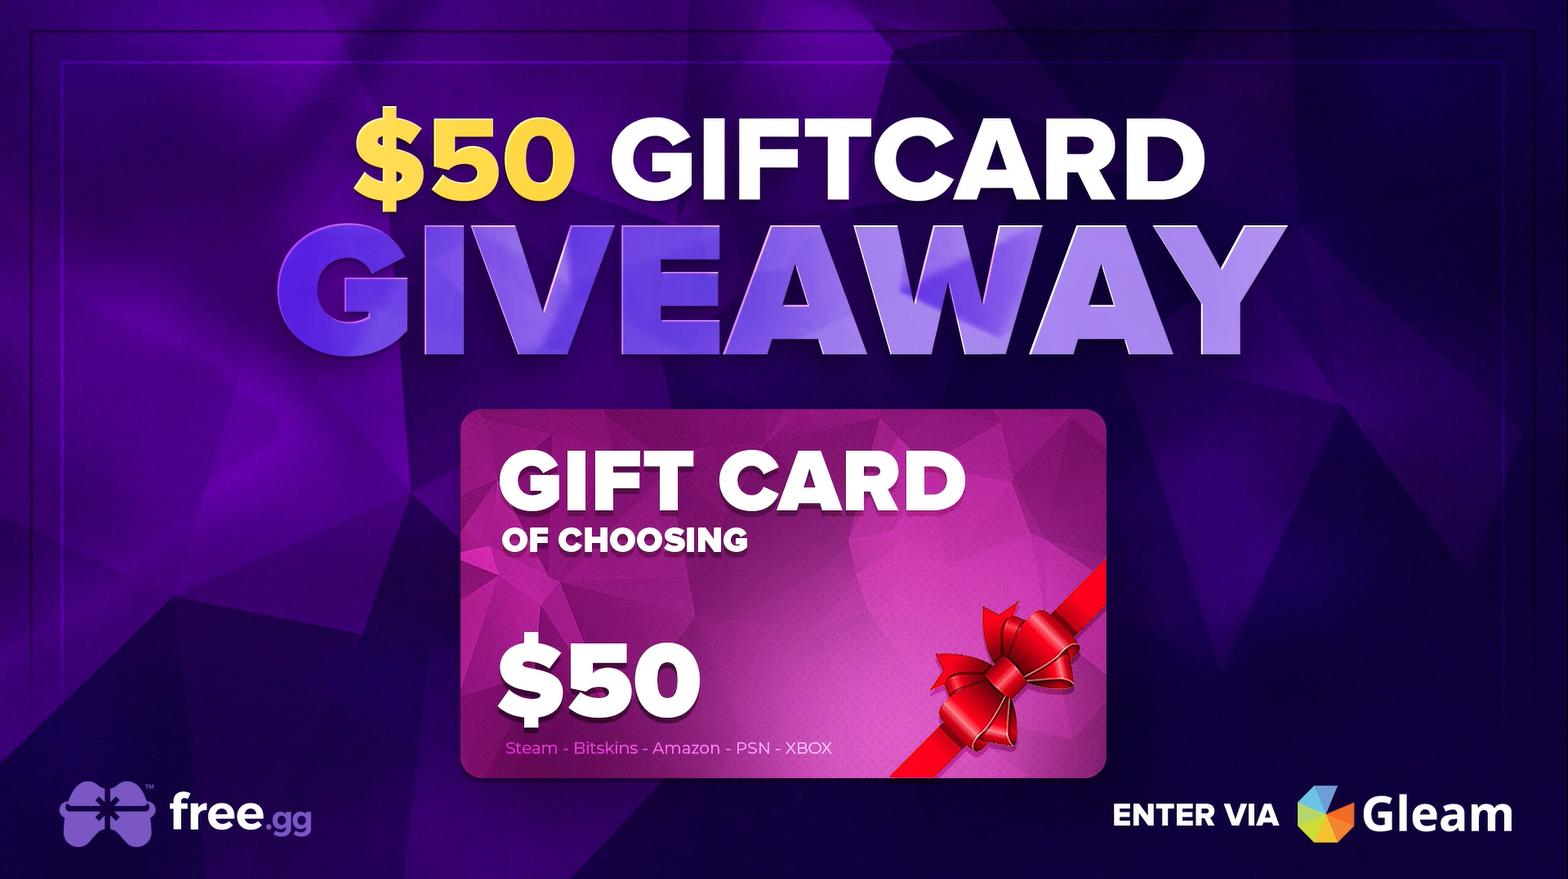 $50 GIFT CARD GIVEAWAY Giveaway Image